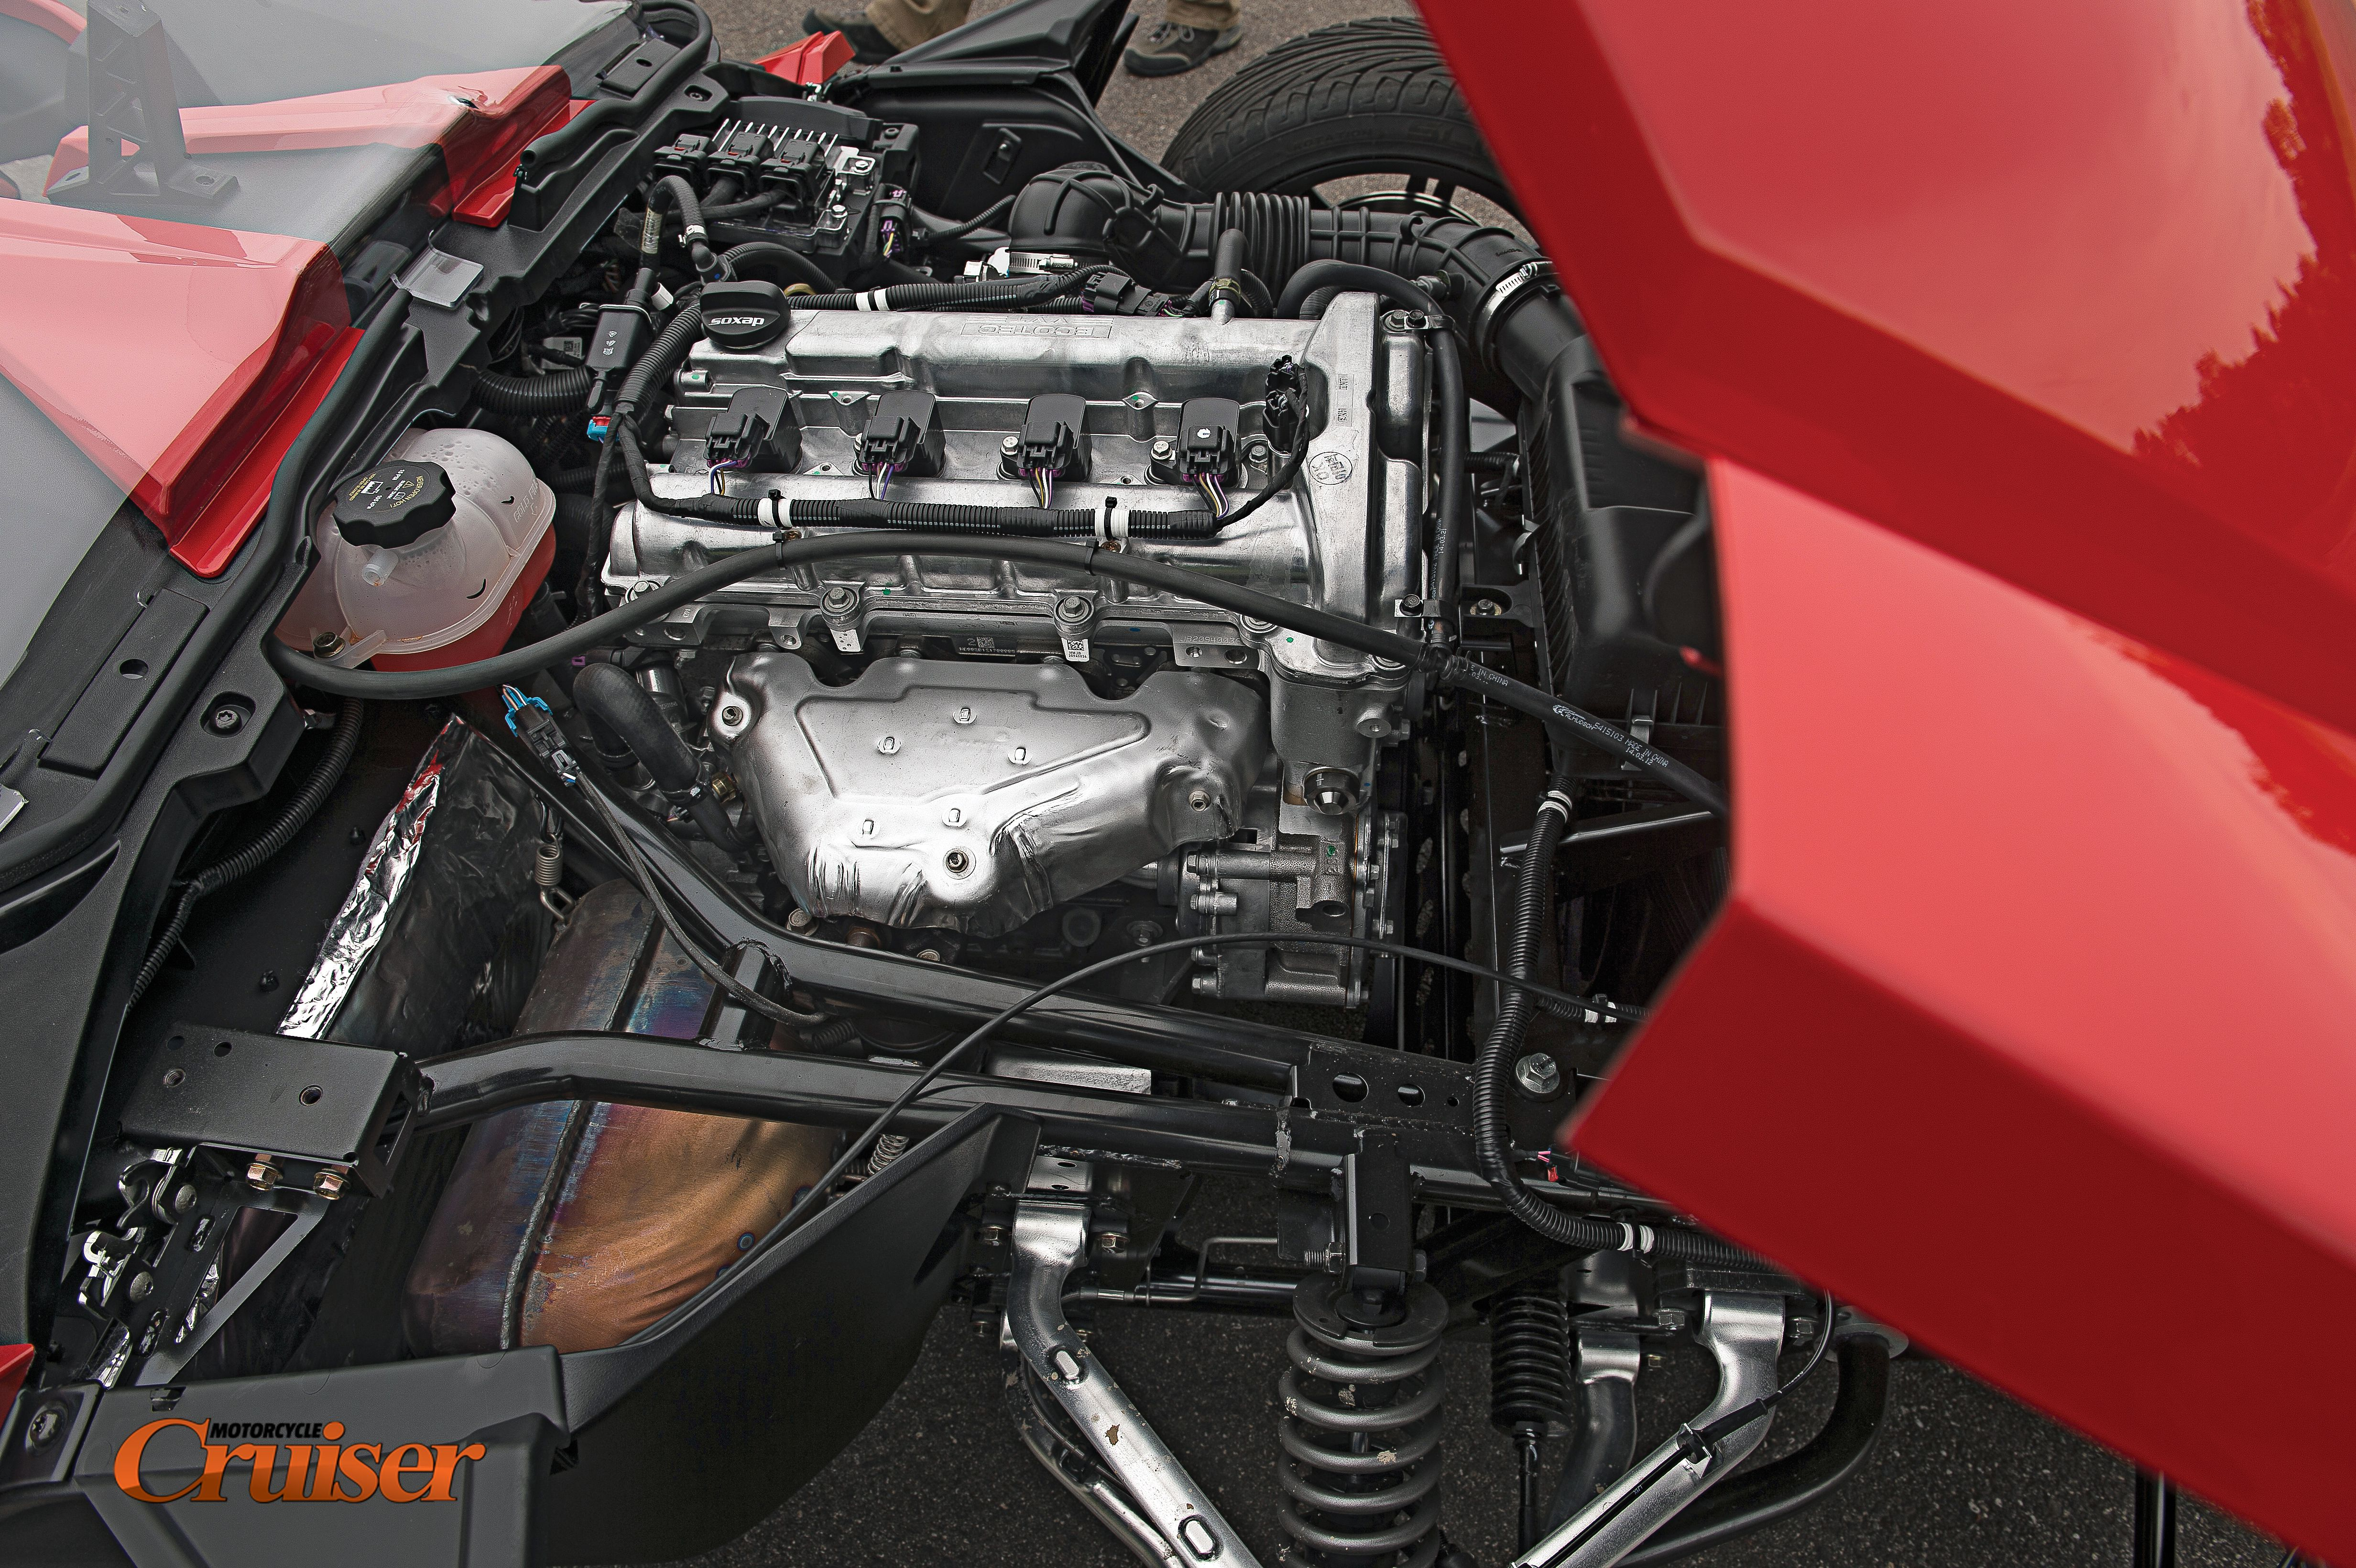 2015 Polaris Slingshot Top Speed and Specs | Motorcycle Cruiser